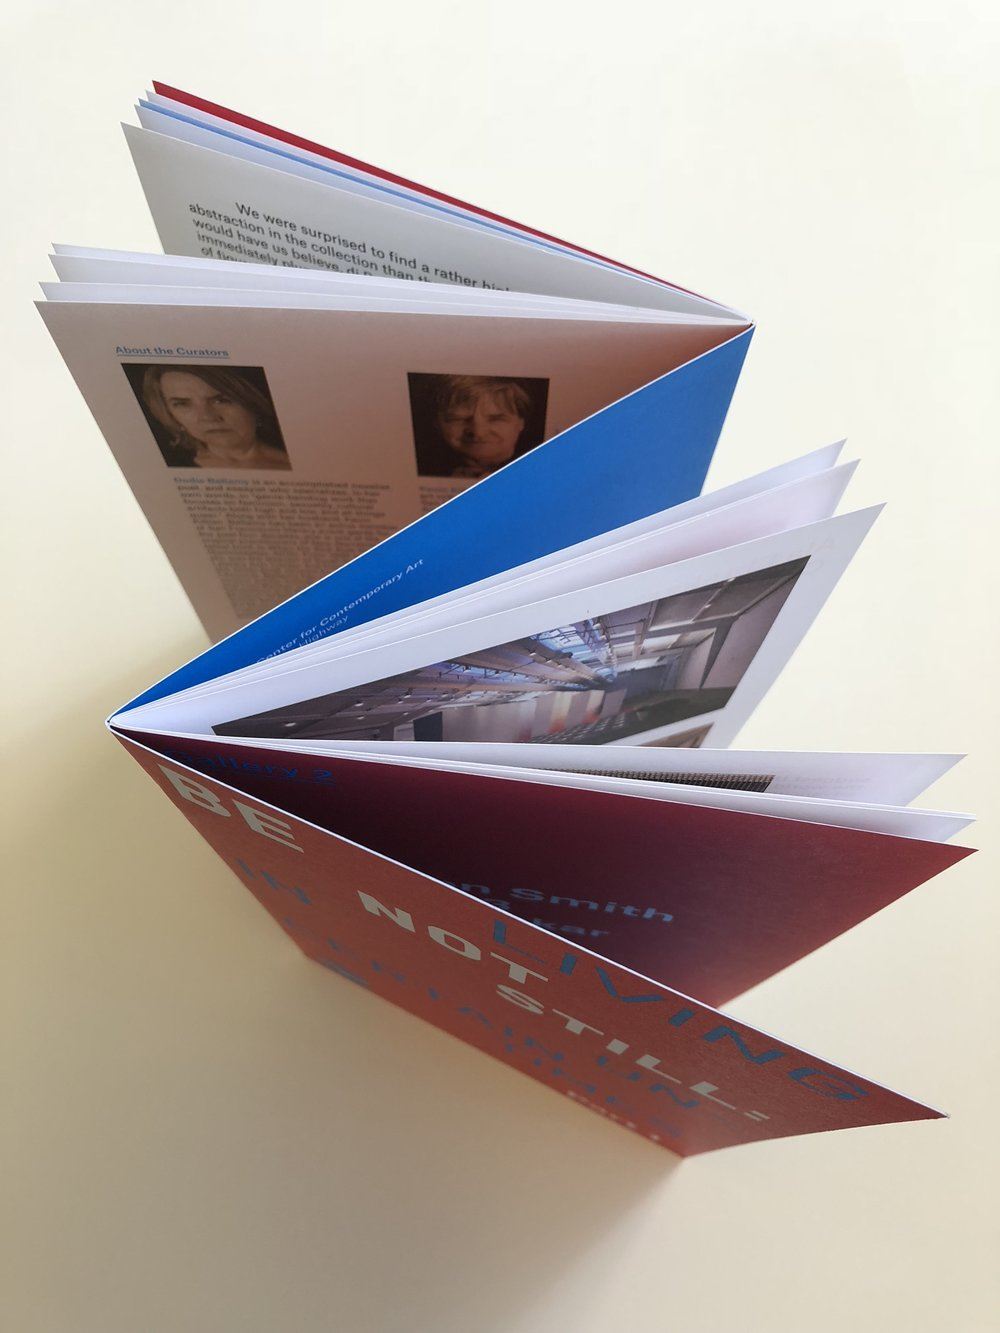 2 saddle-stitched booklets in a Z-fold cover